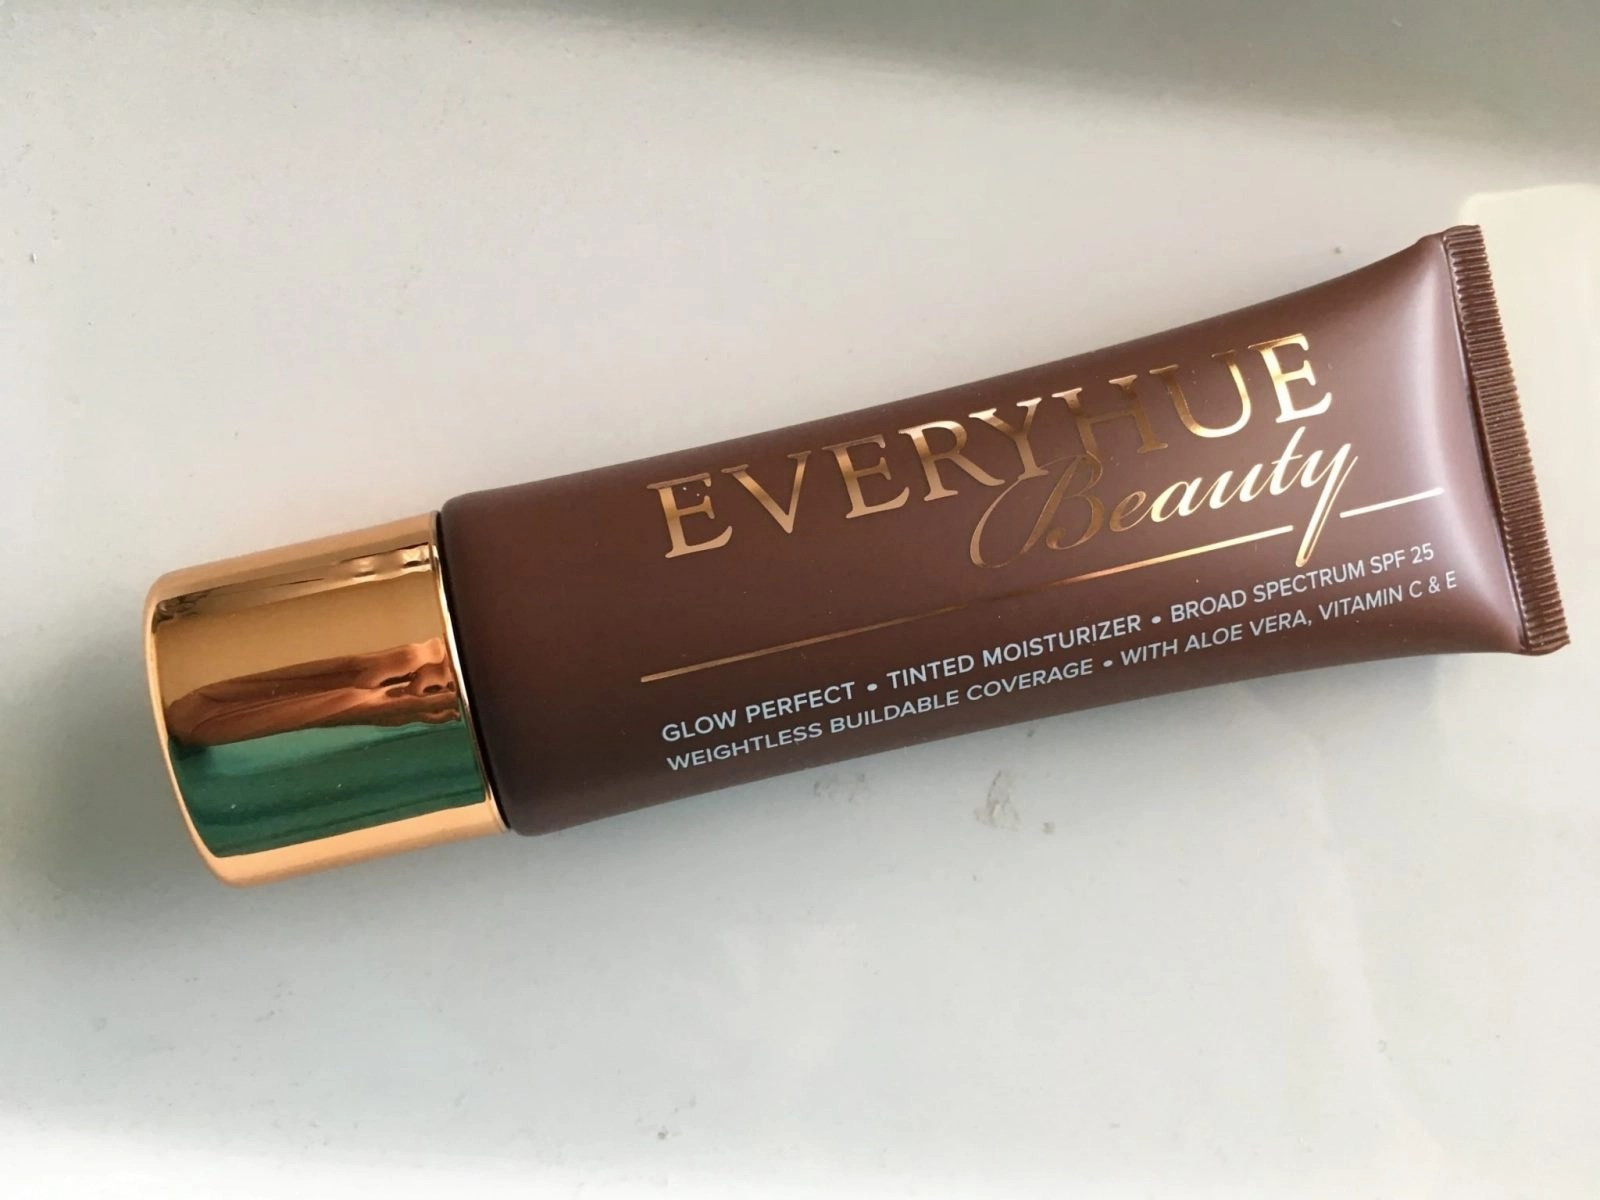 Everyhue Beauty Glow Perfect Tinted Moisturizer in #12